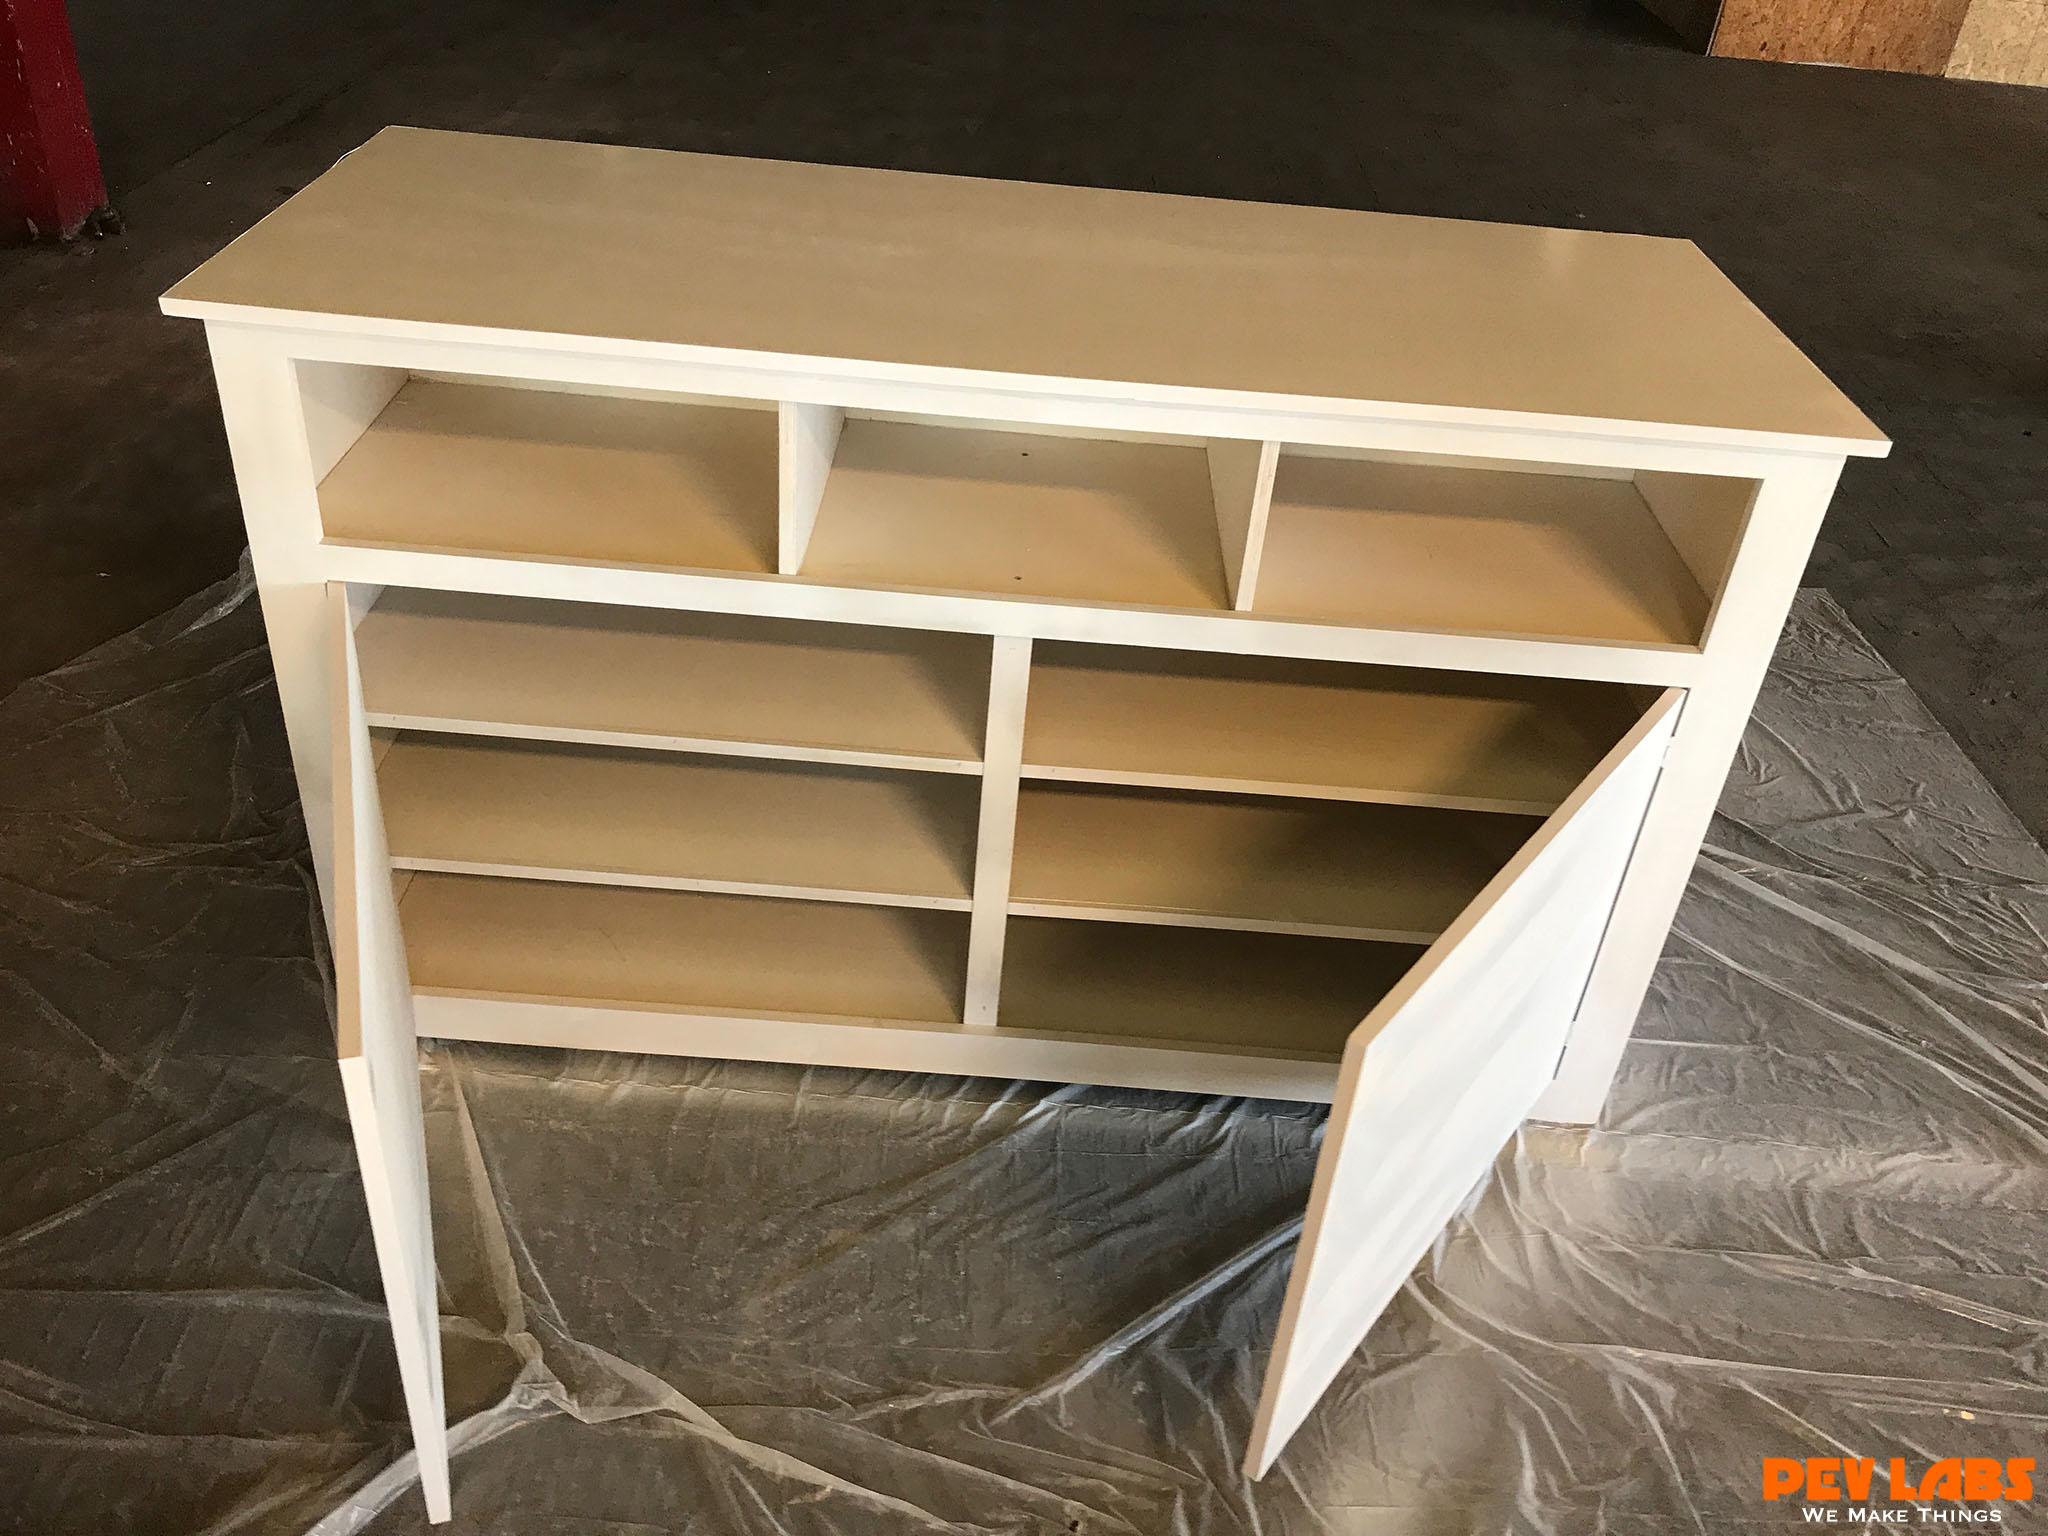 Custom Cabinet - Casework Shelves and Doors